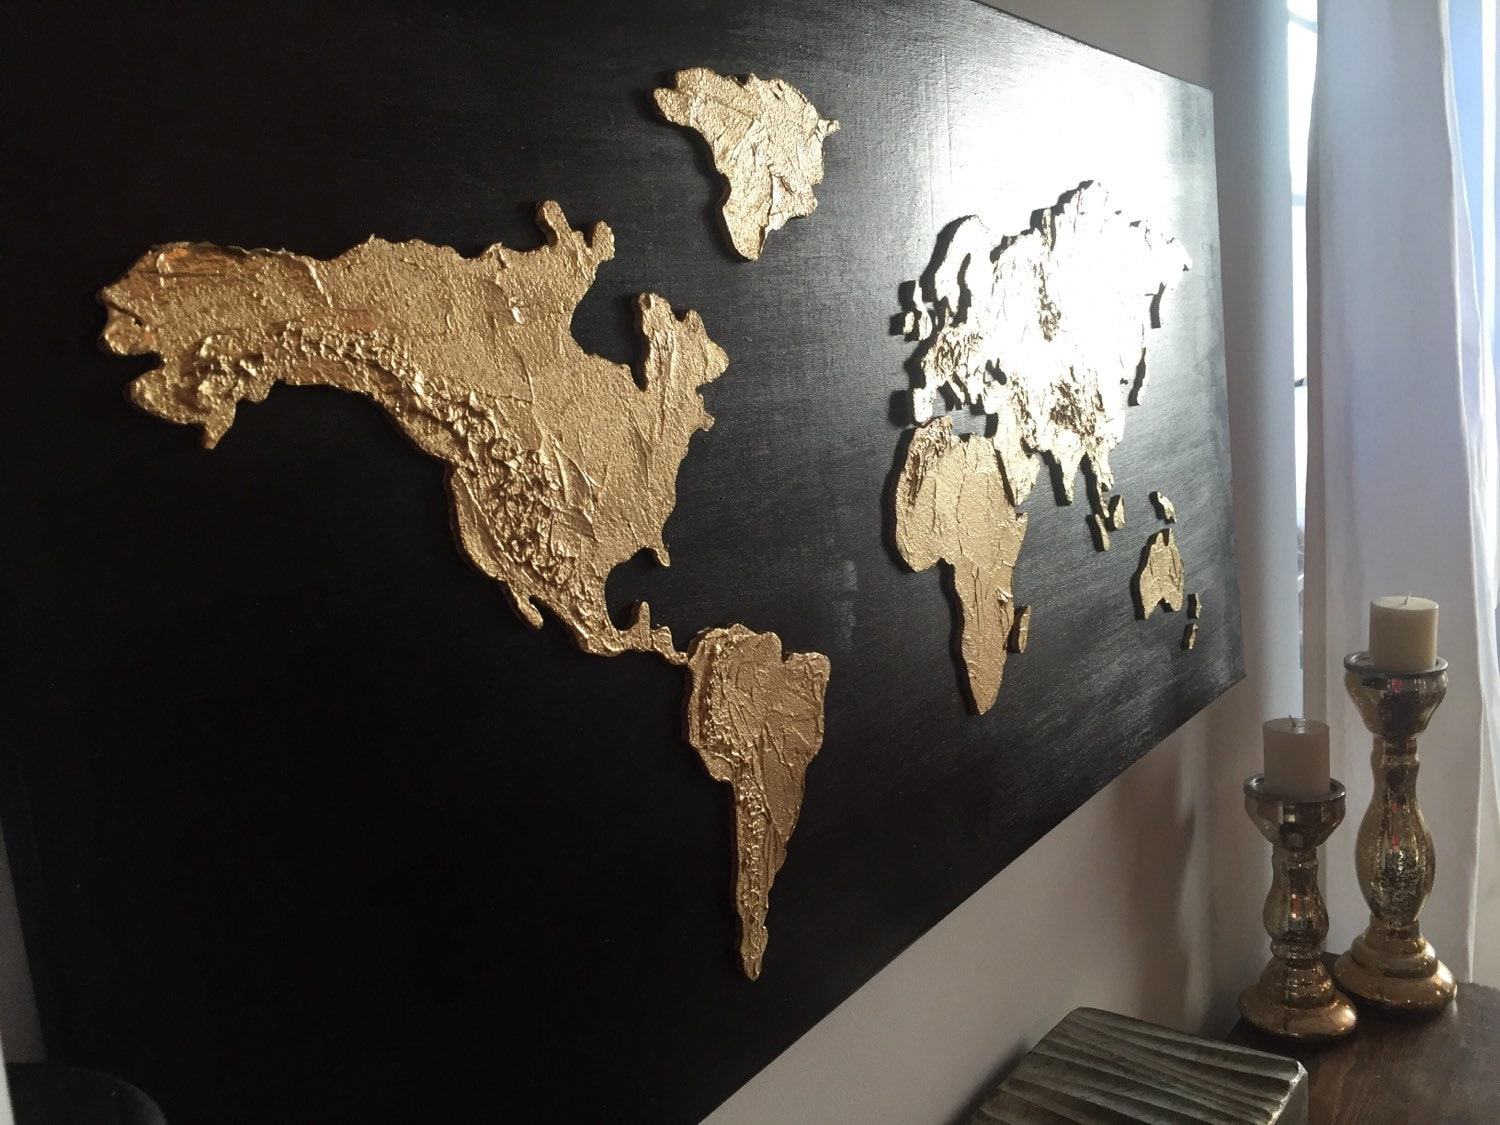 World Map Painting - Large world map painting